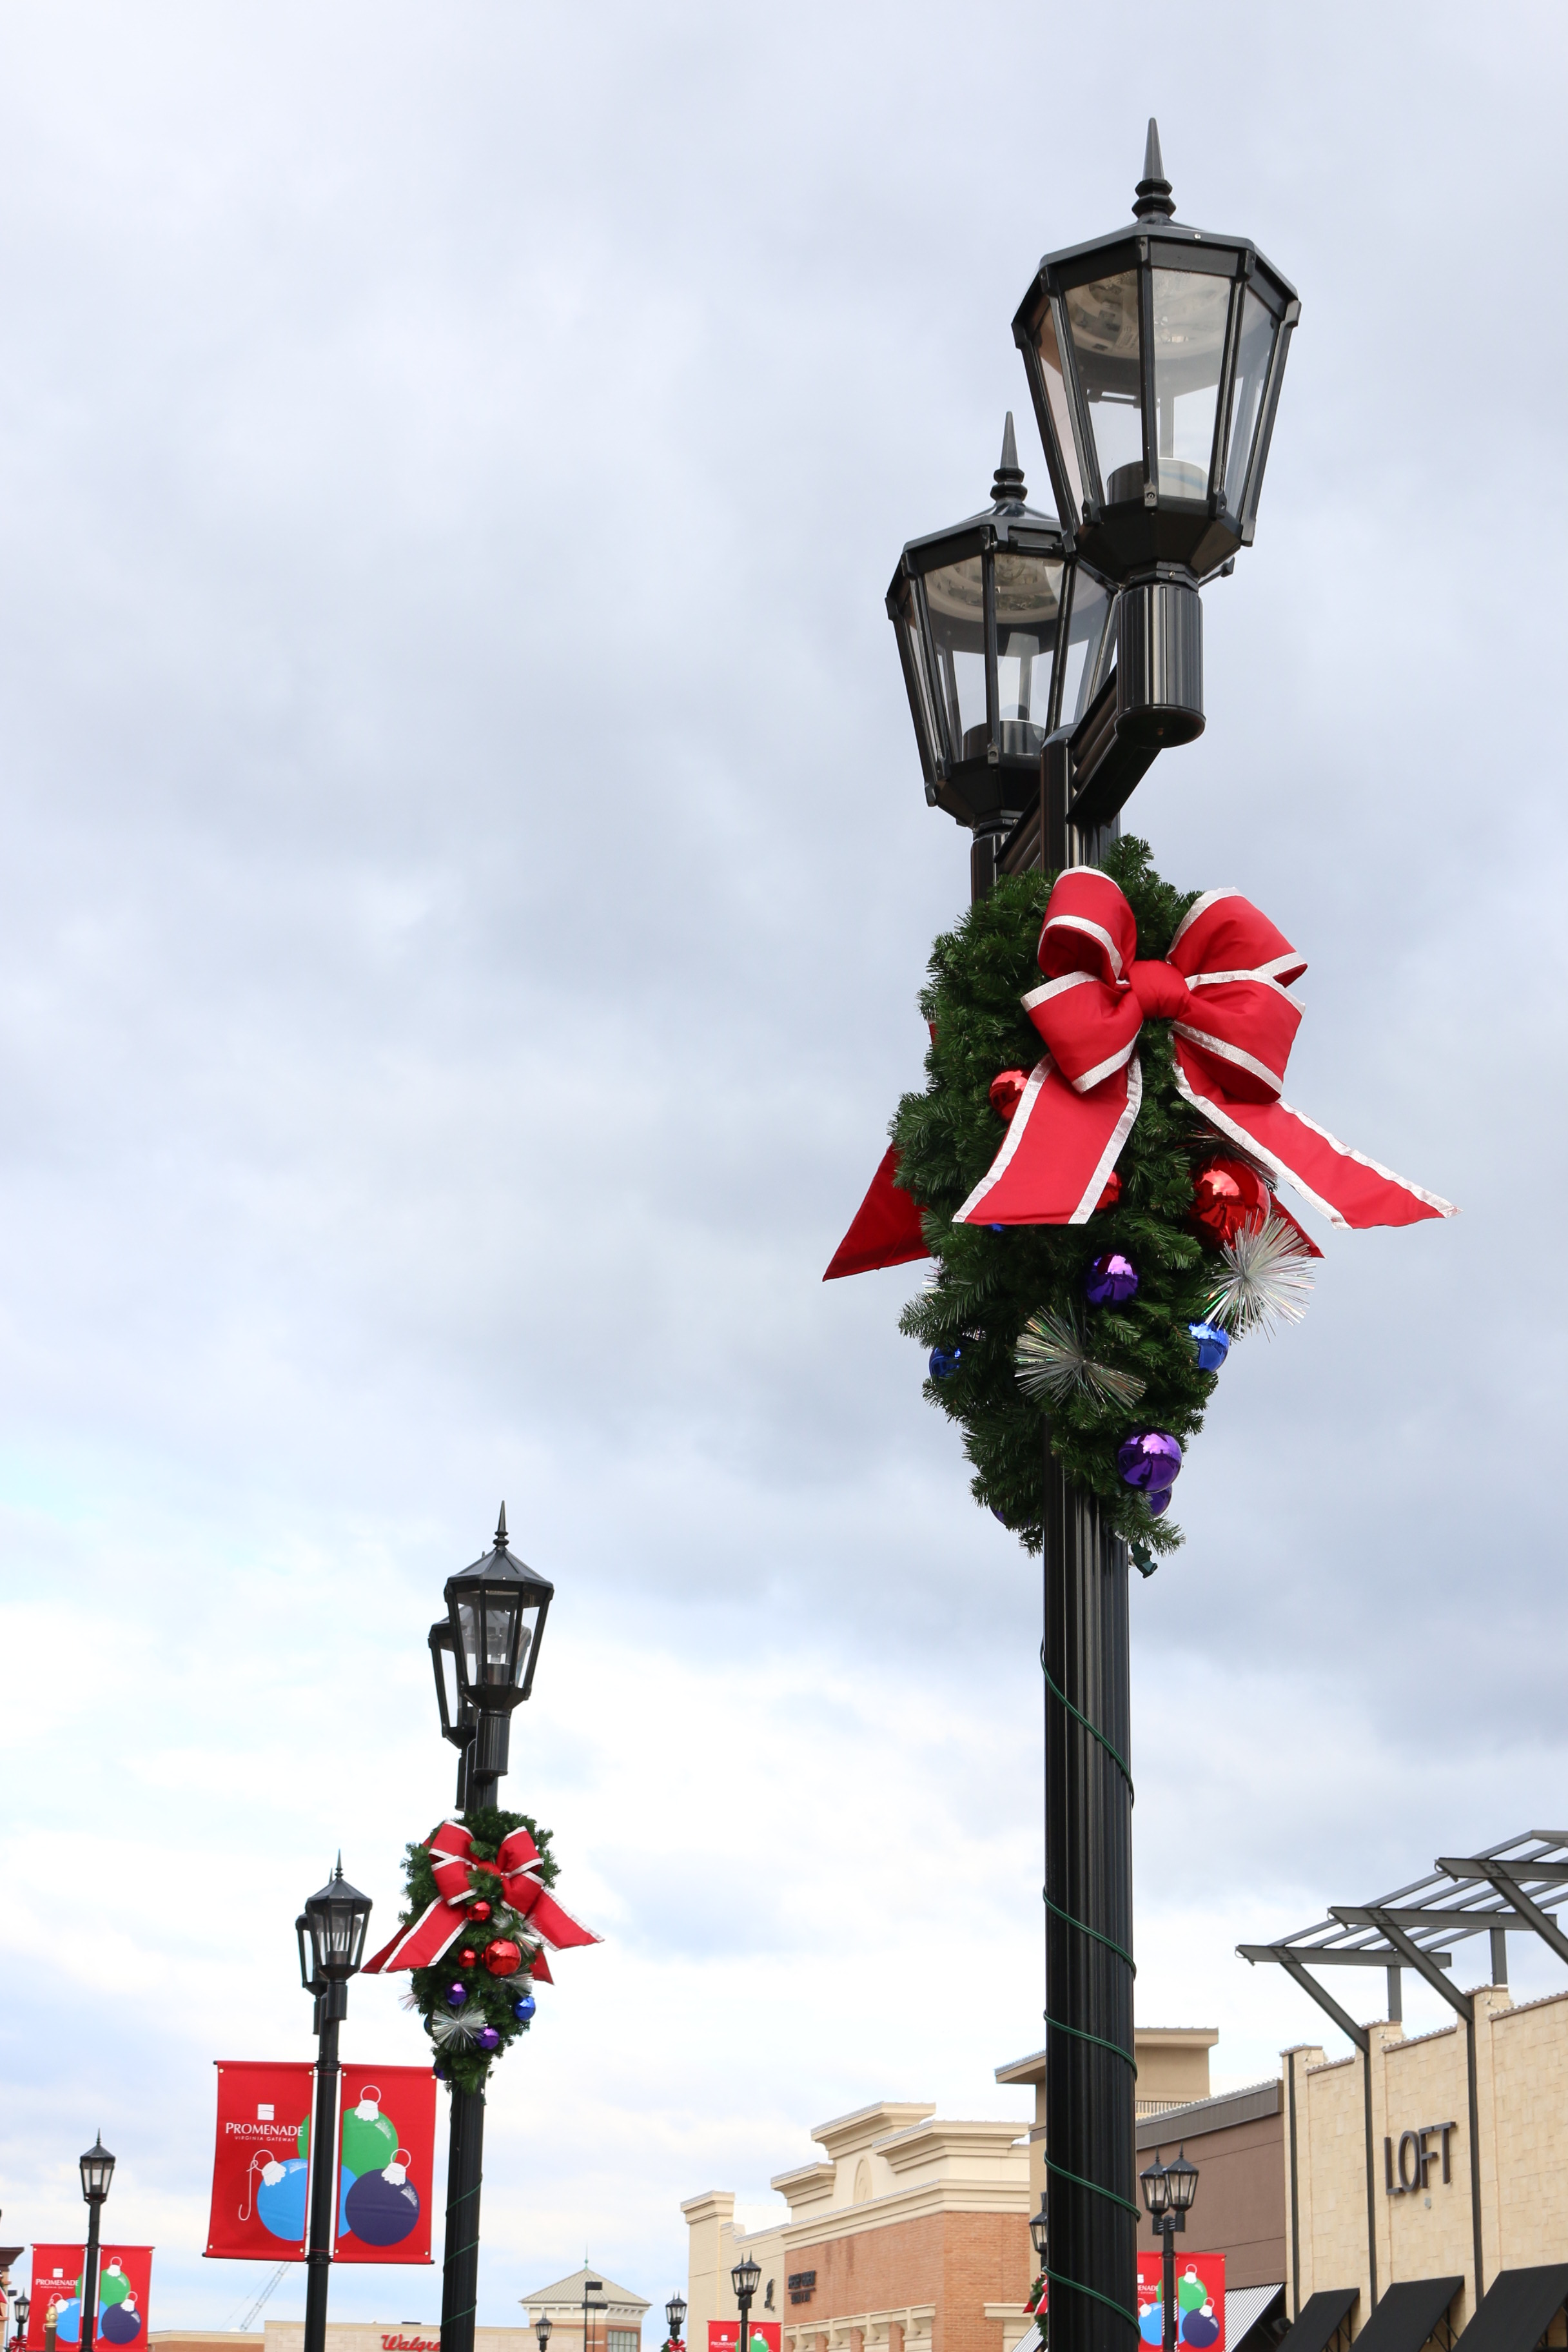 custom light pole christmas decoration - Light Pole Christmas Decorations